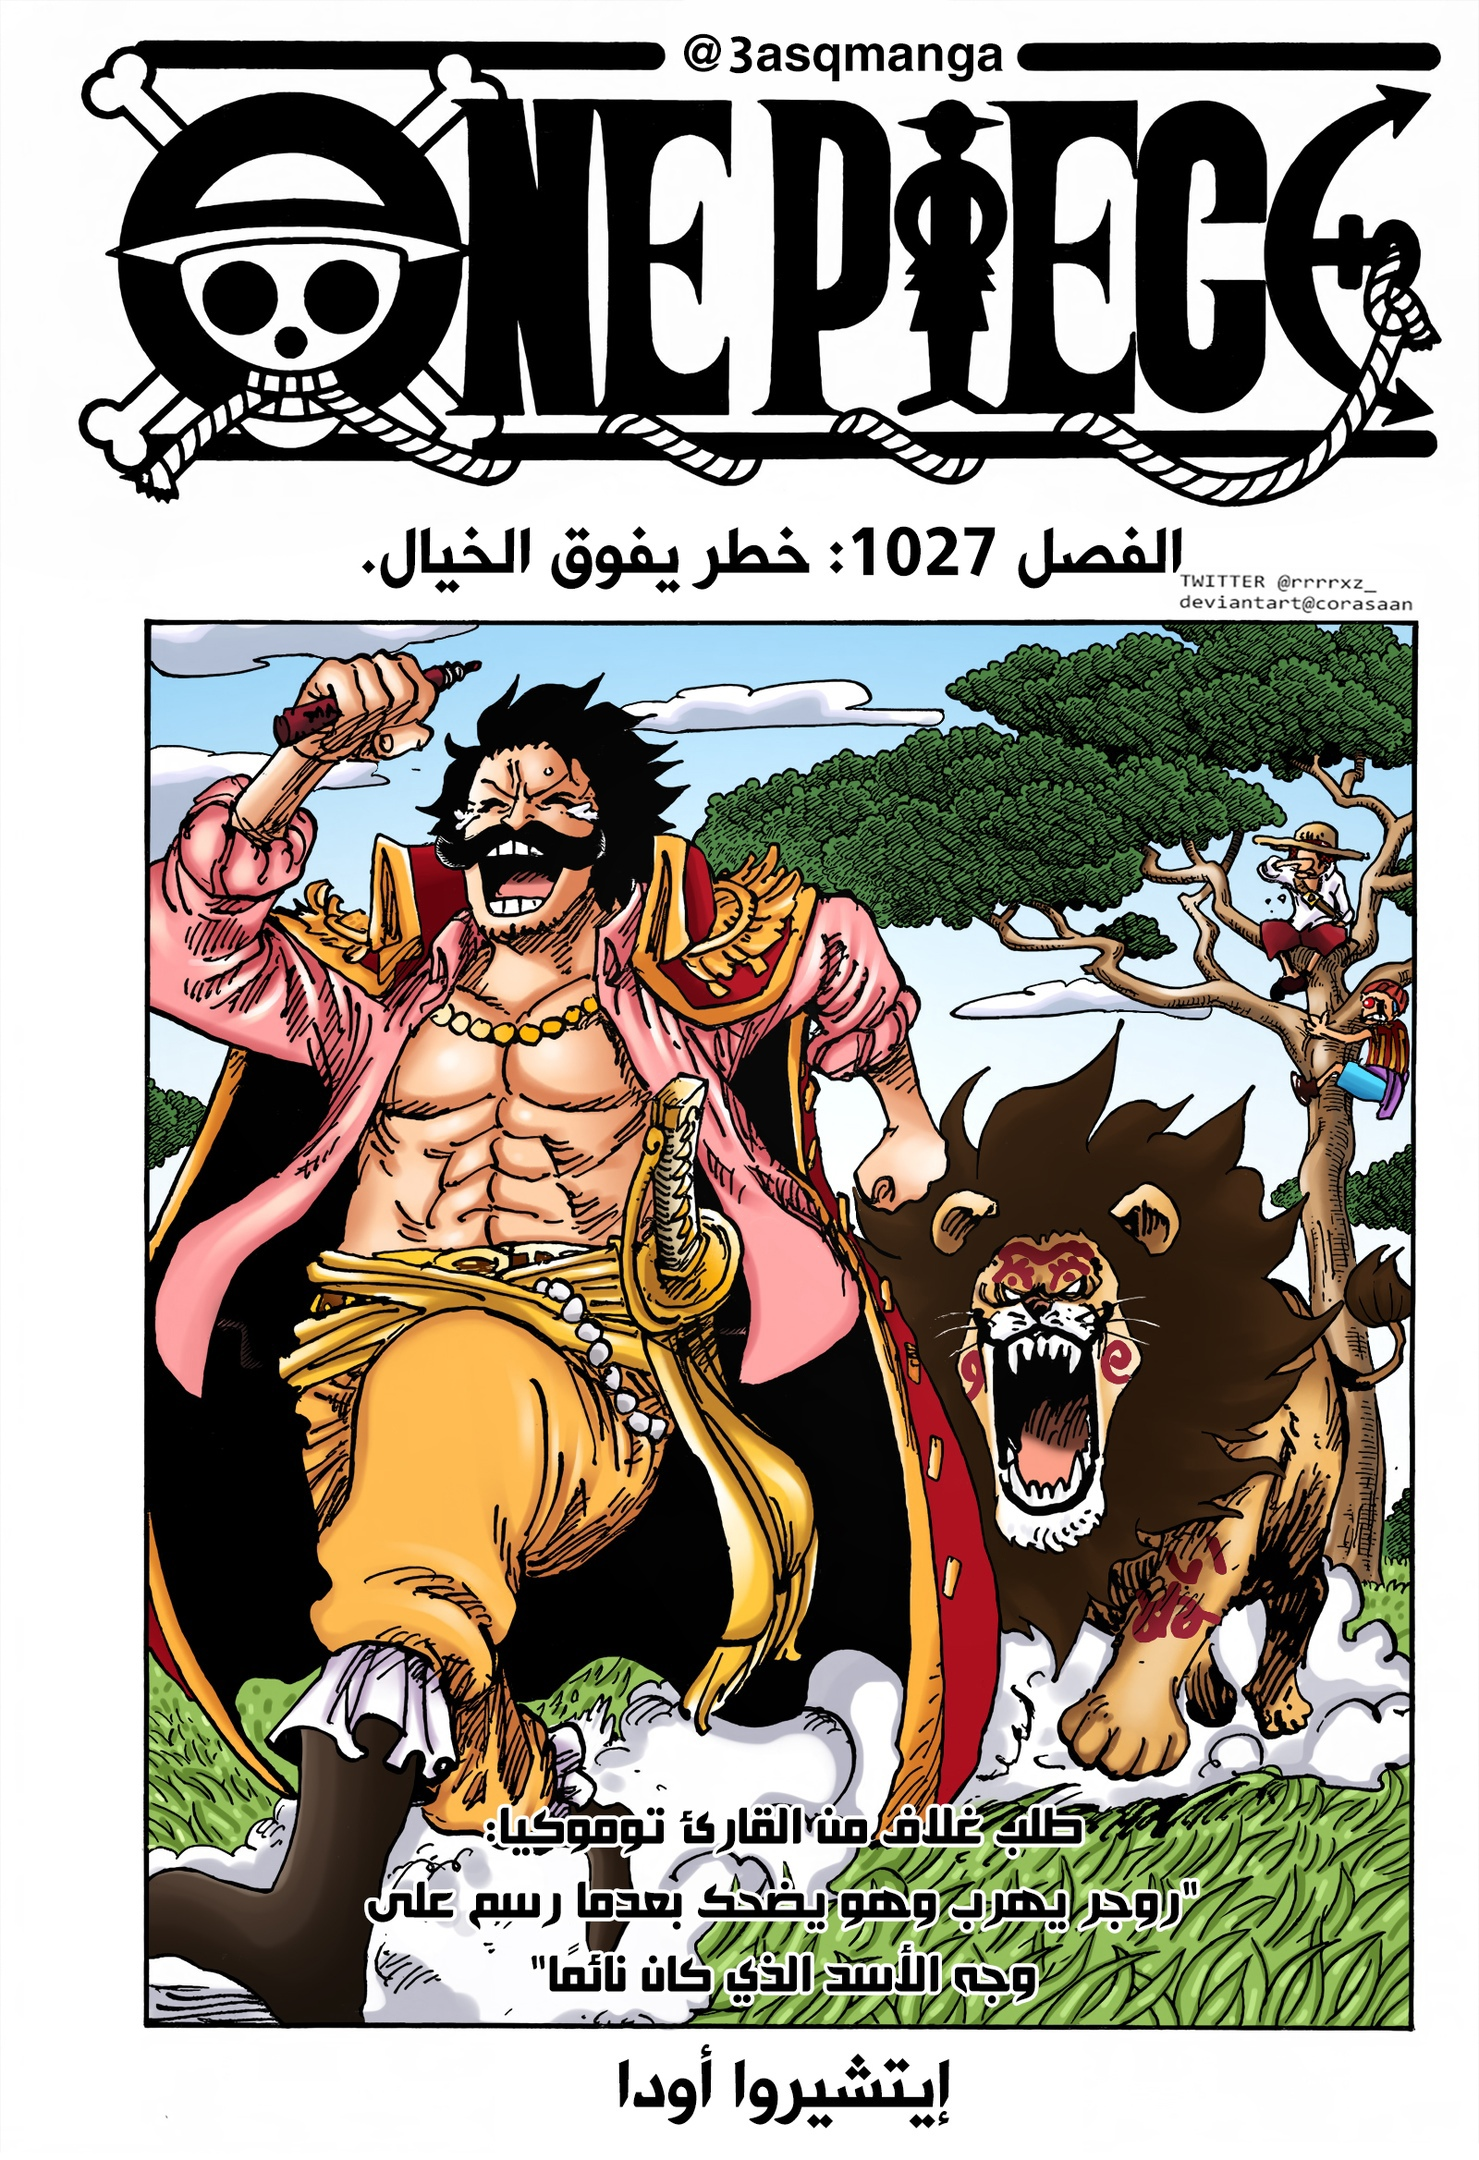 one piece arab chapter 1027, image №22